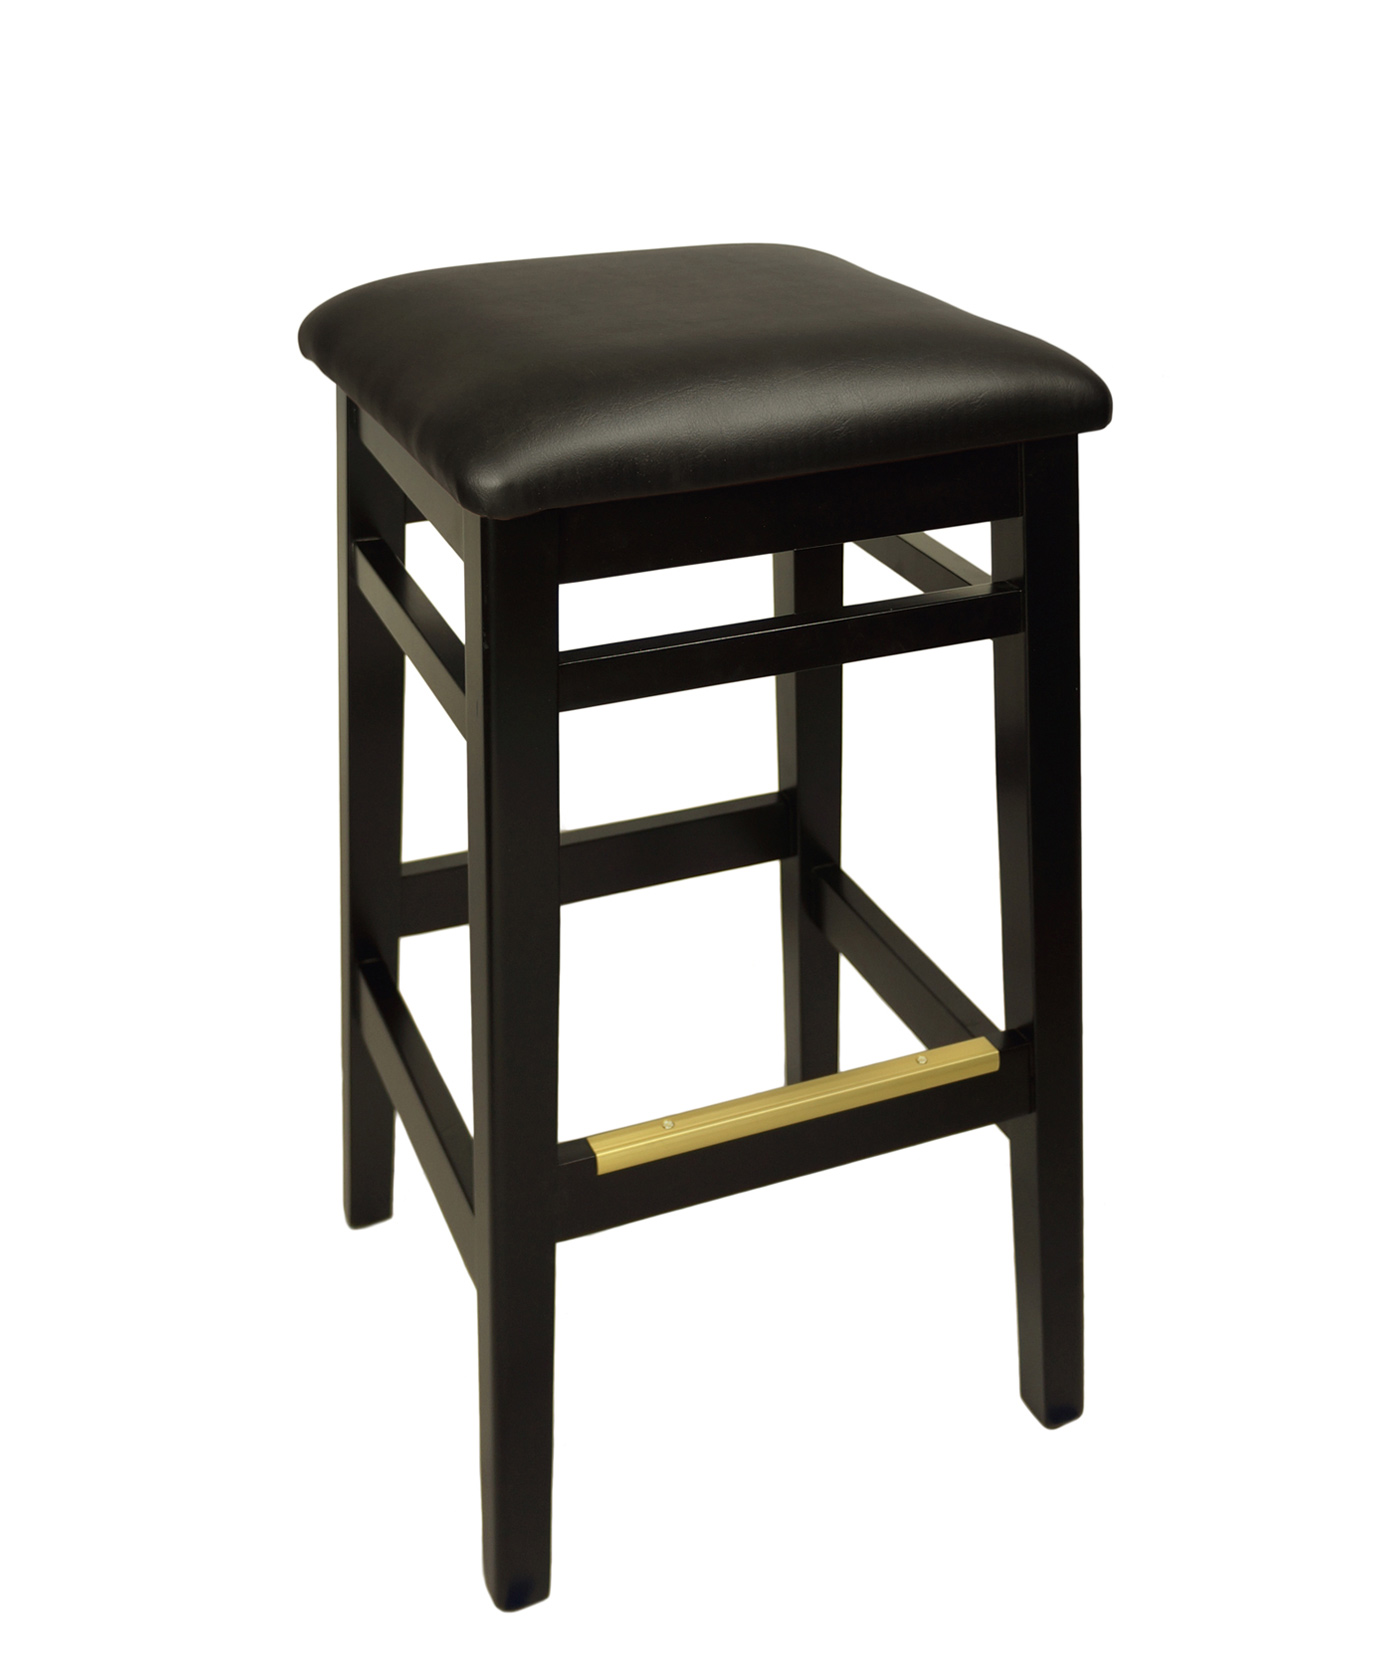 Backless Wood Frame Square Seat Stool Fwb680b Commercial